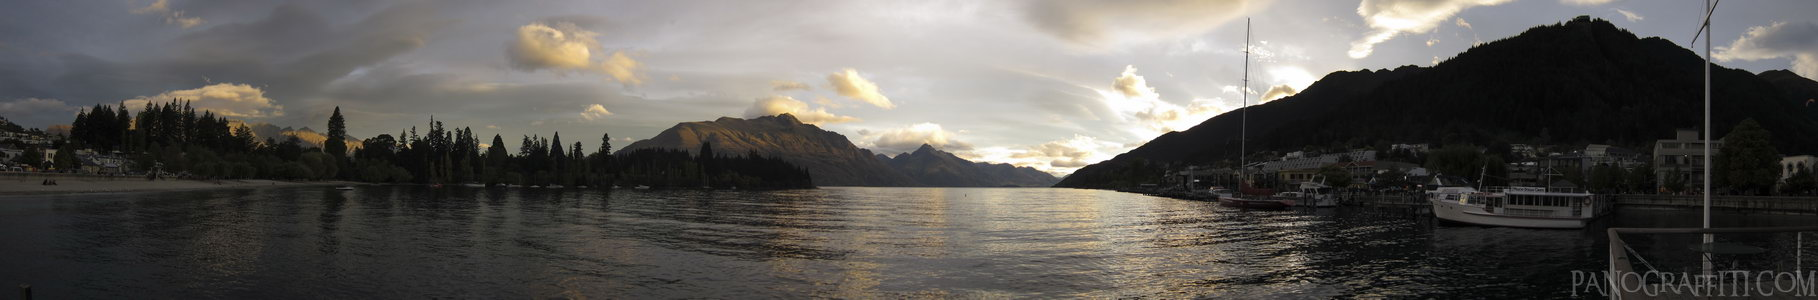 Dusk Across Lake Wakatipu - Queenstown, Otago, New Zealand